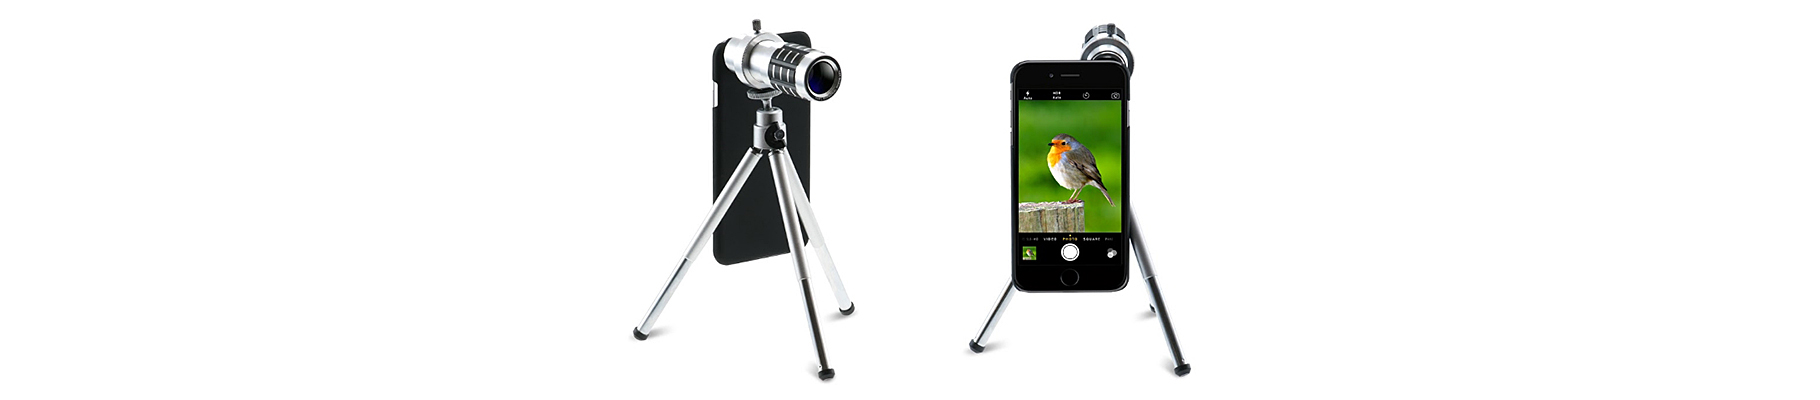 cell phone lens with tripod